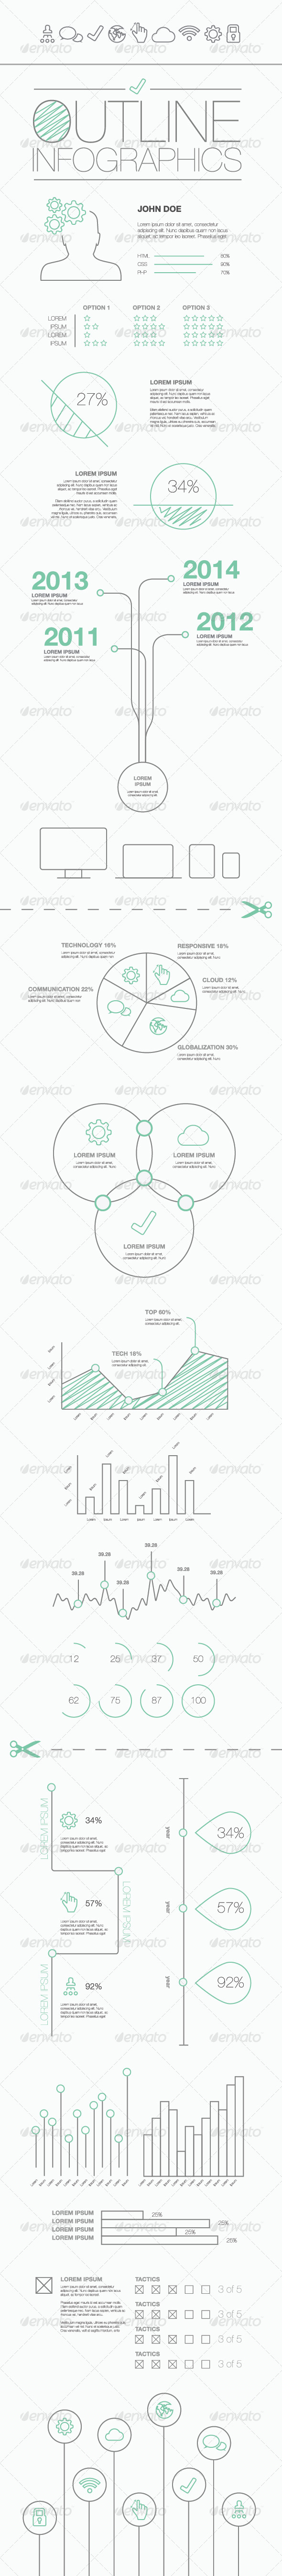 GraphicRiver Outline Infographics Vector Illustration 6965077